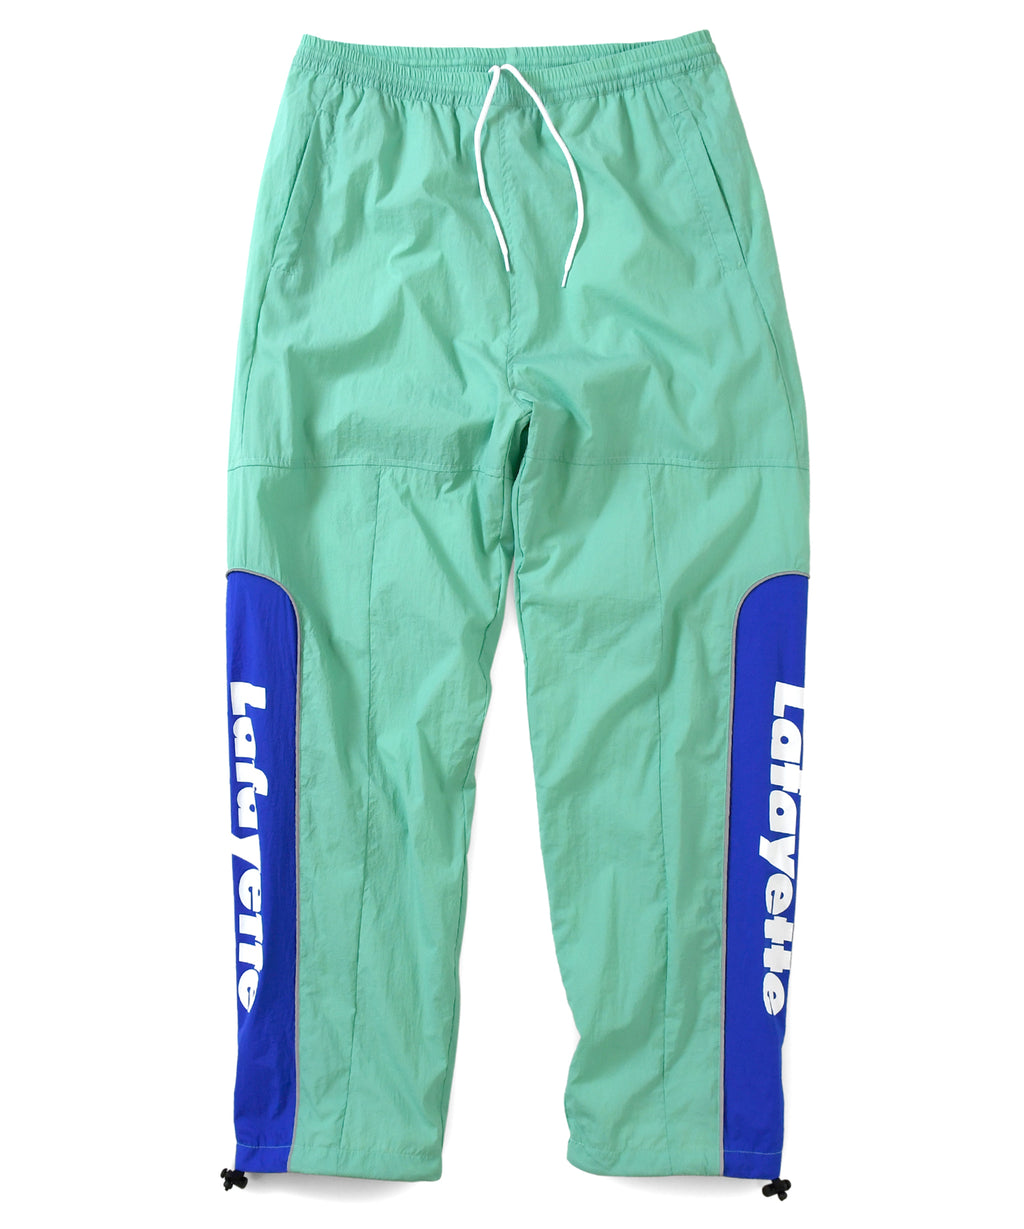 Lafayette COLORBLOCK NYLON TRACK PANTS LS201202 MINT